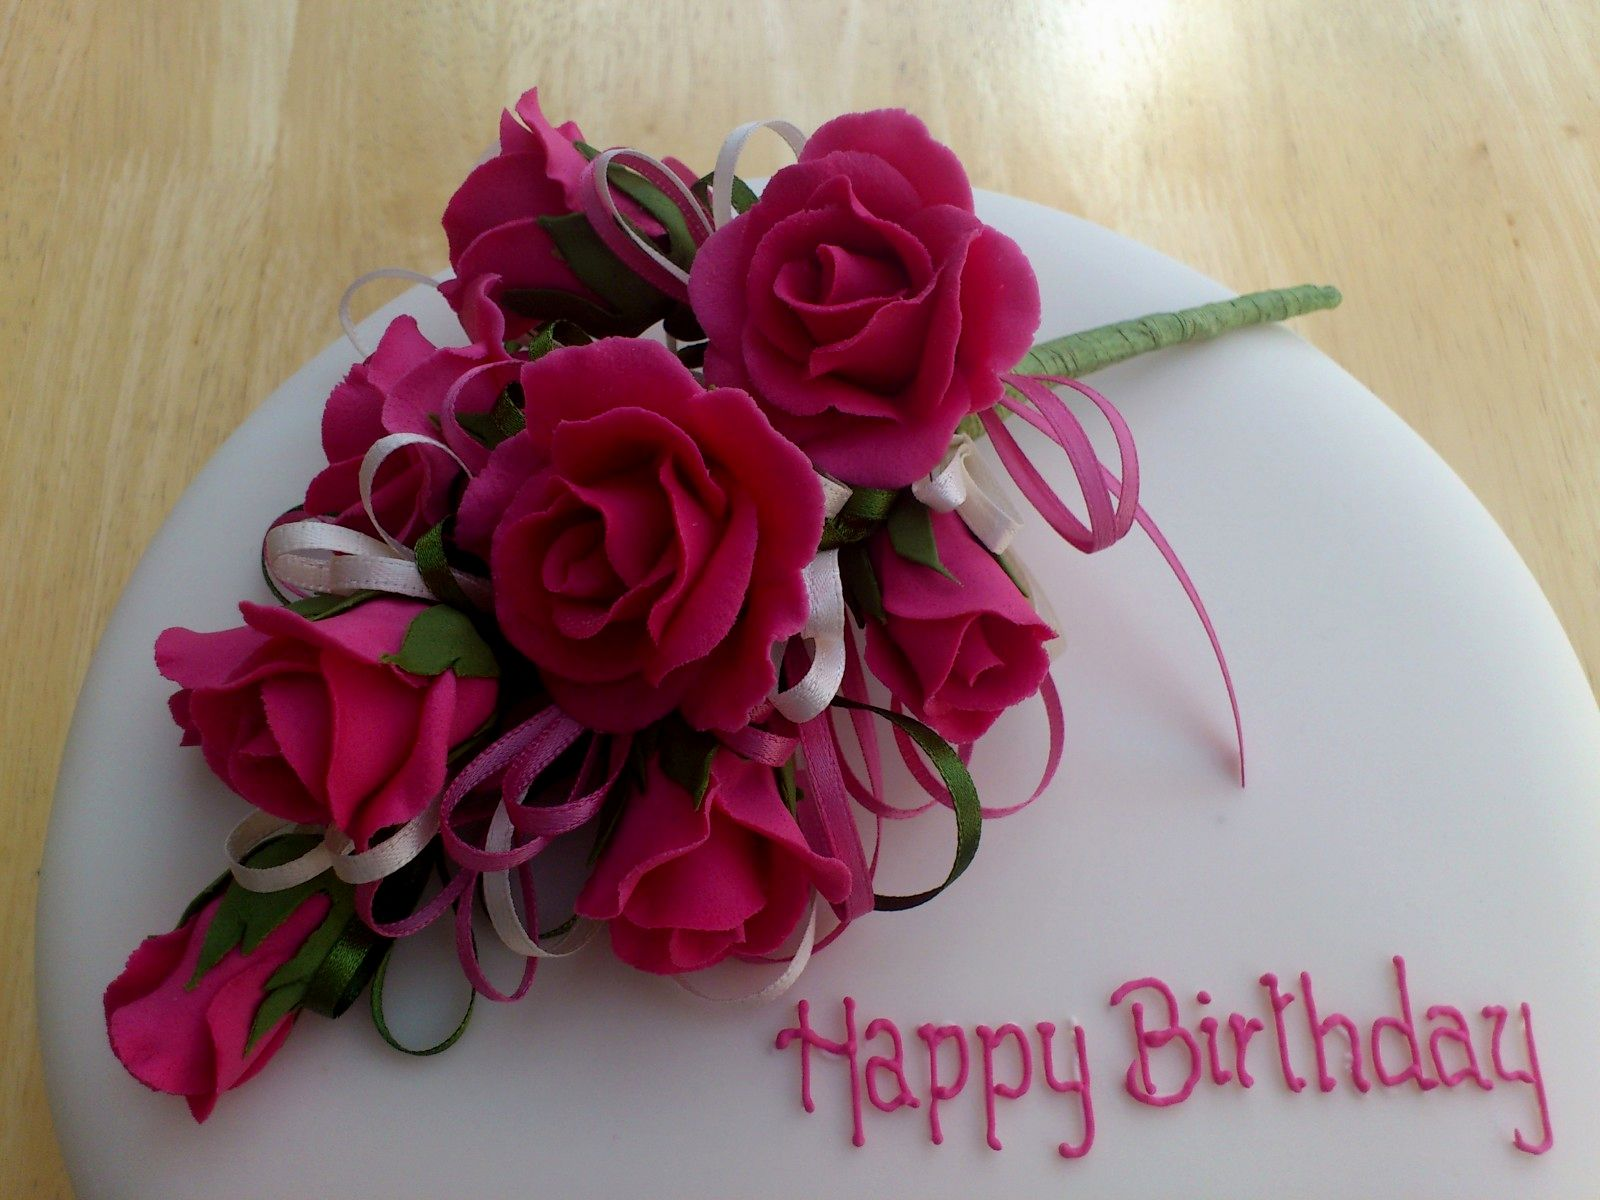 10 All Birthday Cakes Pictures Roses Photo Birthday Cake With